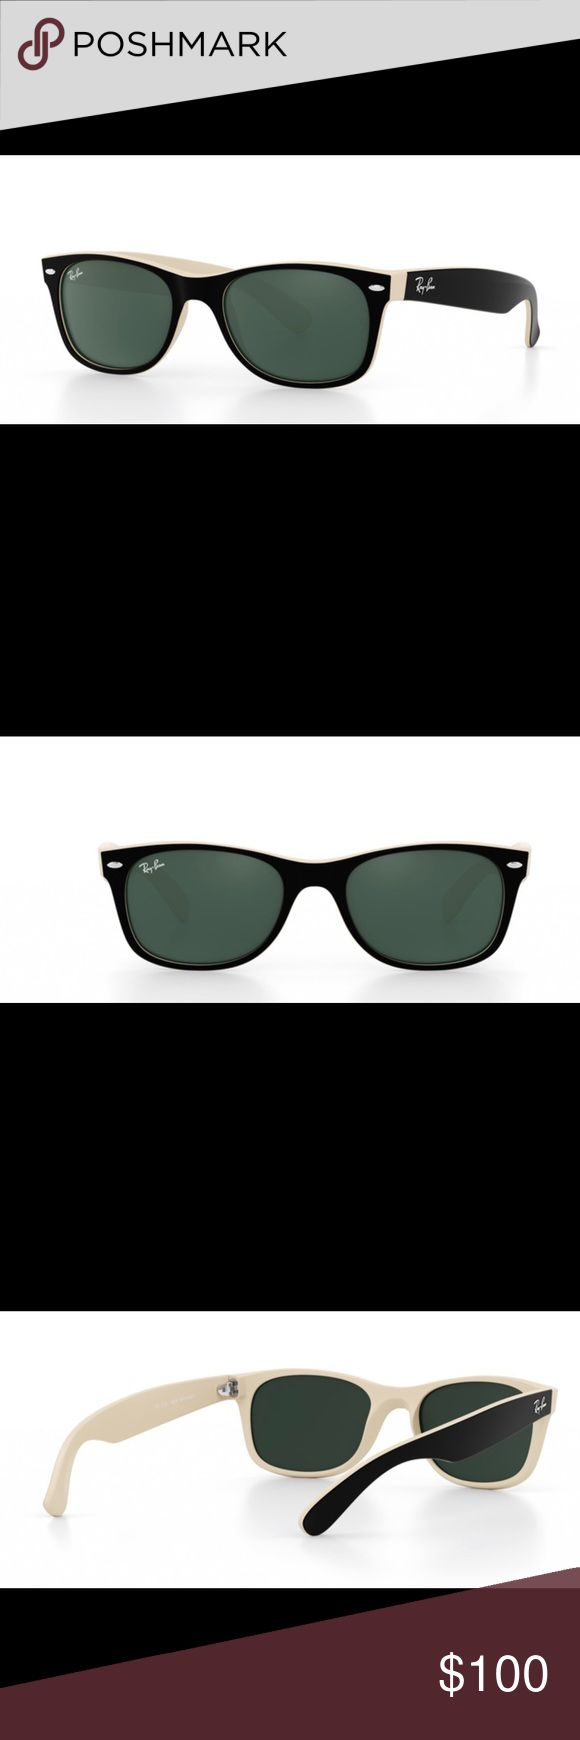 Customized new wayfarer ray bans Off white detailing interior, black glossy outside. Not polarized. New with minimal scratches. OPEN TO REASONABLE OFFERS Ray-Ban Accessories Sunglasses